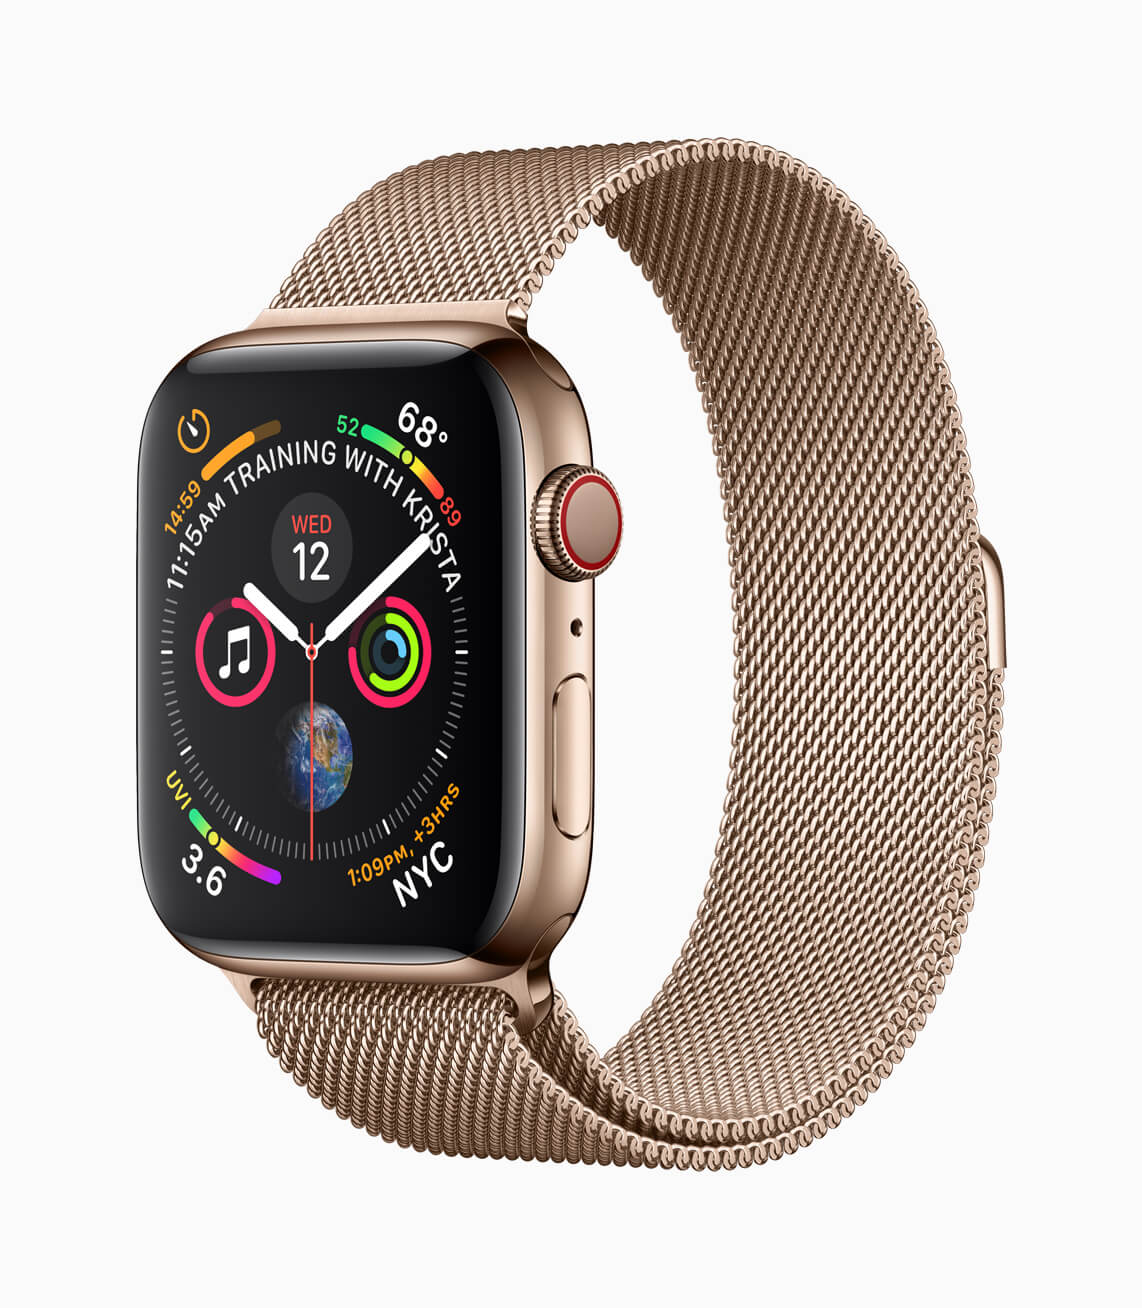 Apple Watch Series 4 é lançado com eletrocardiograma